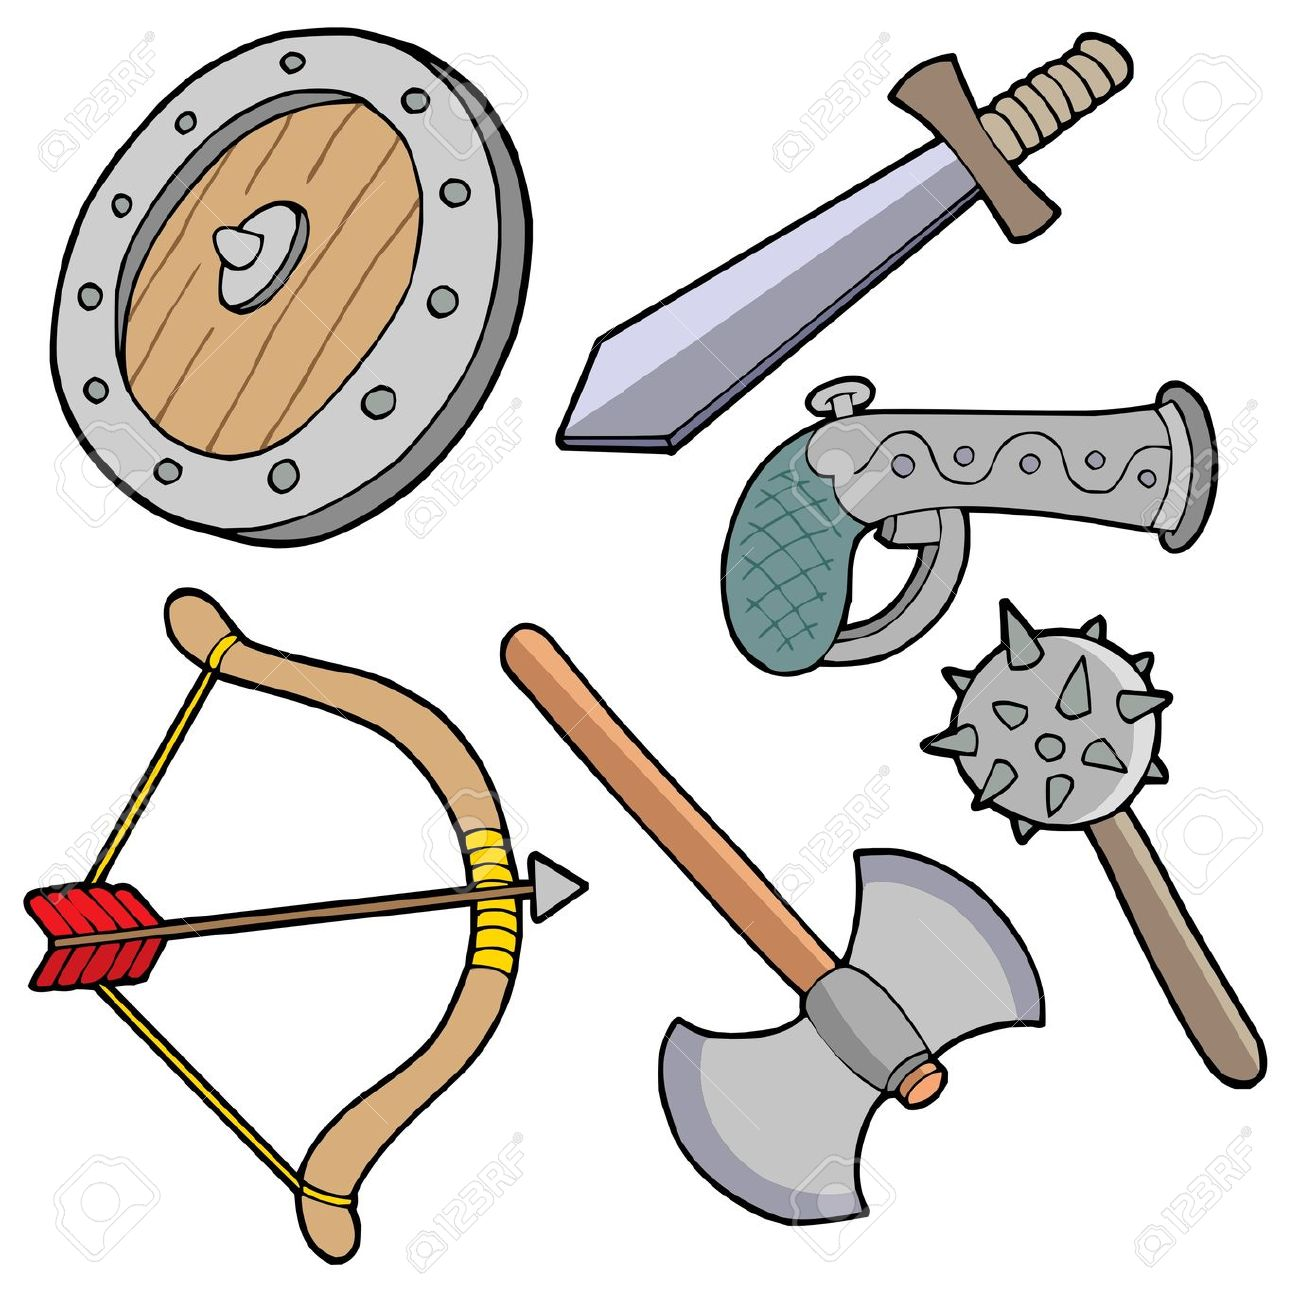 weapon clipart - Weapons Clipart